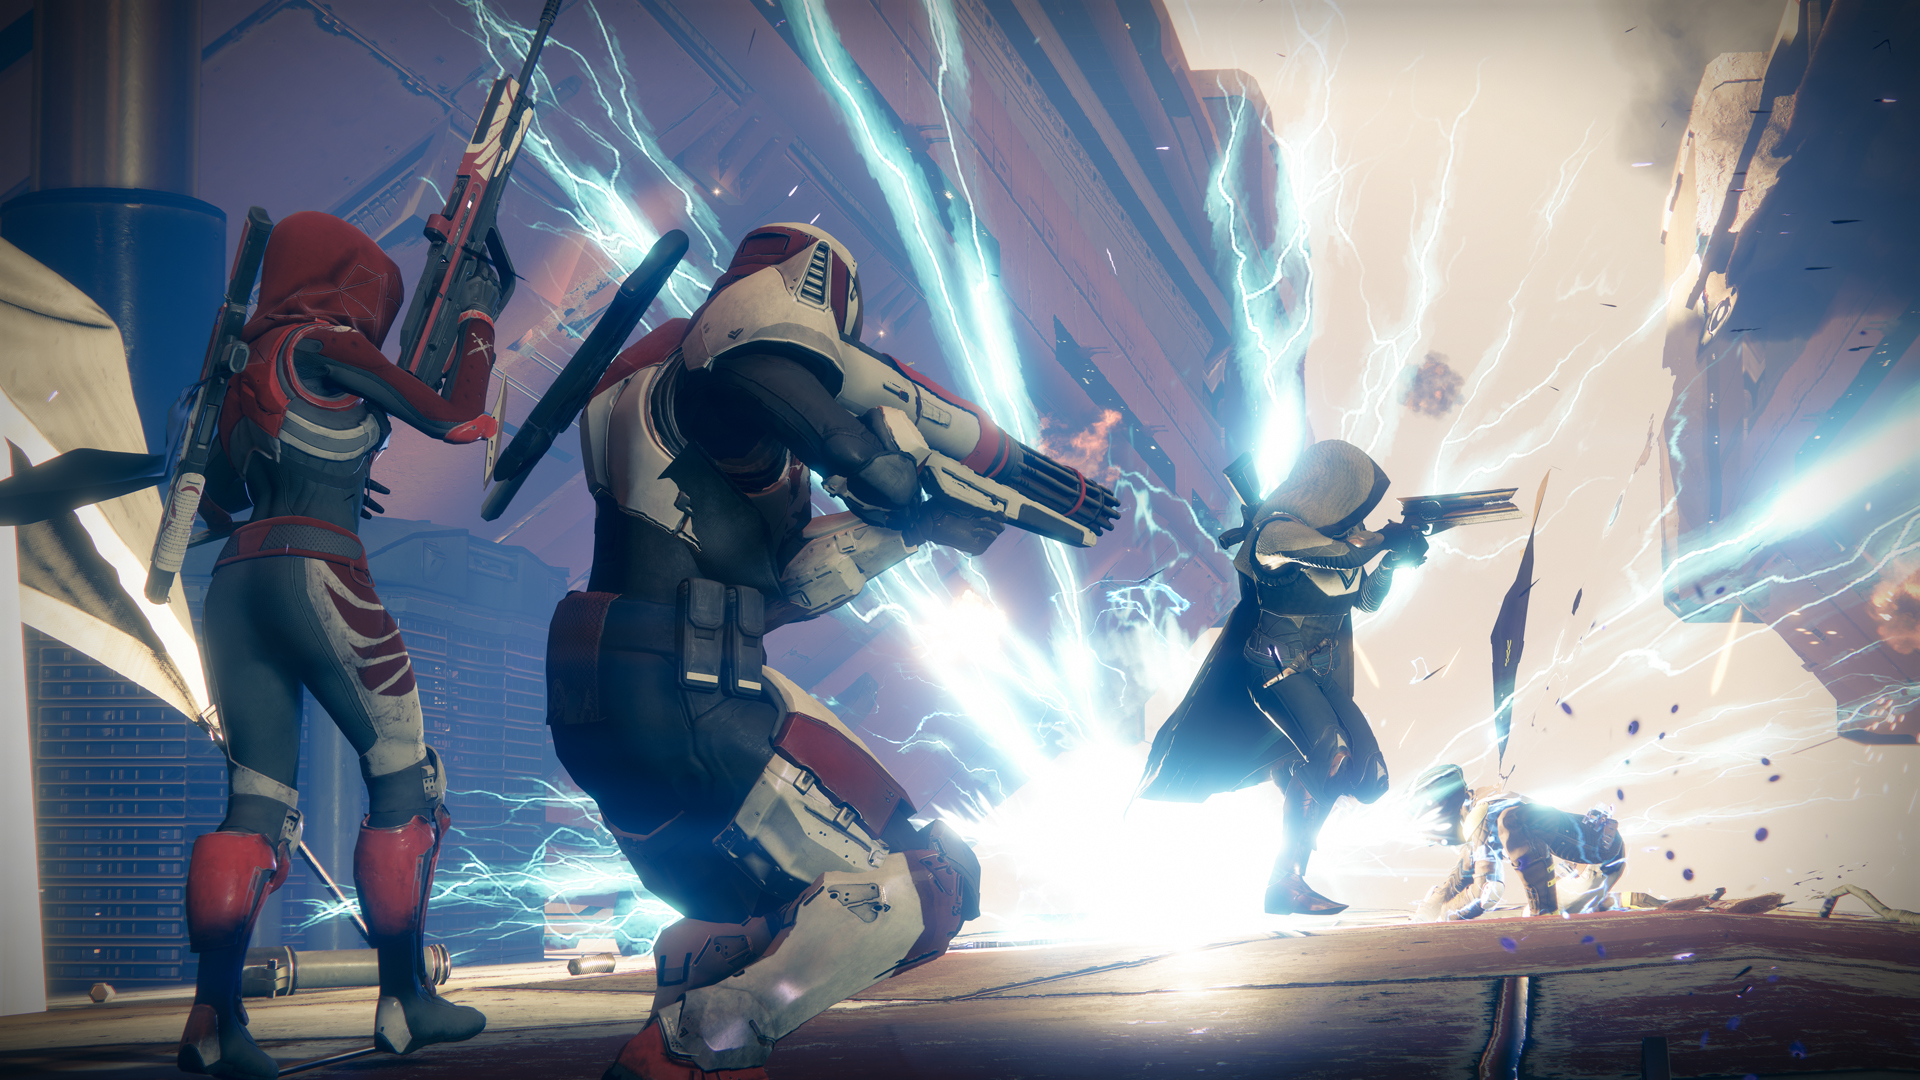 We Ve Played The Final Build Of Destiny 2 On Pc Here Are Our